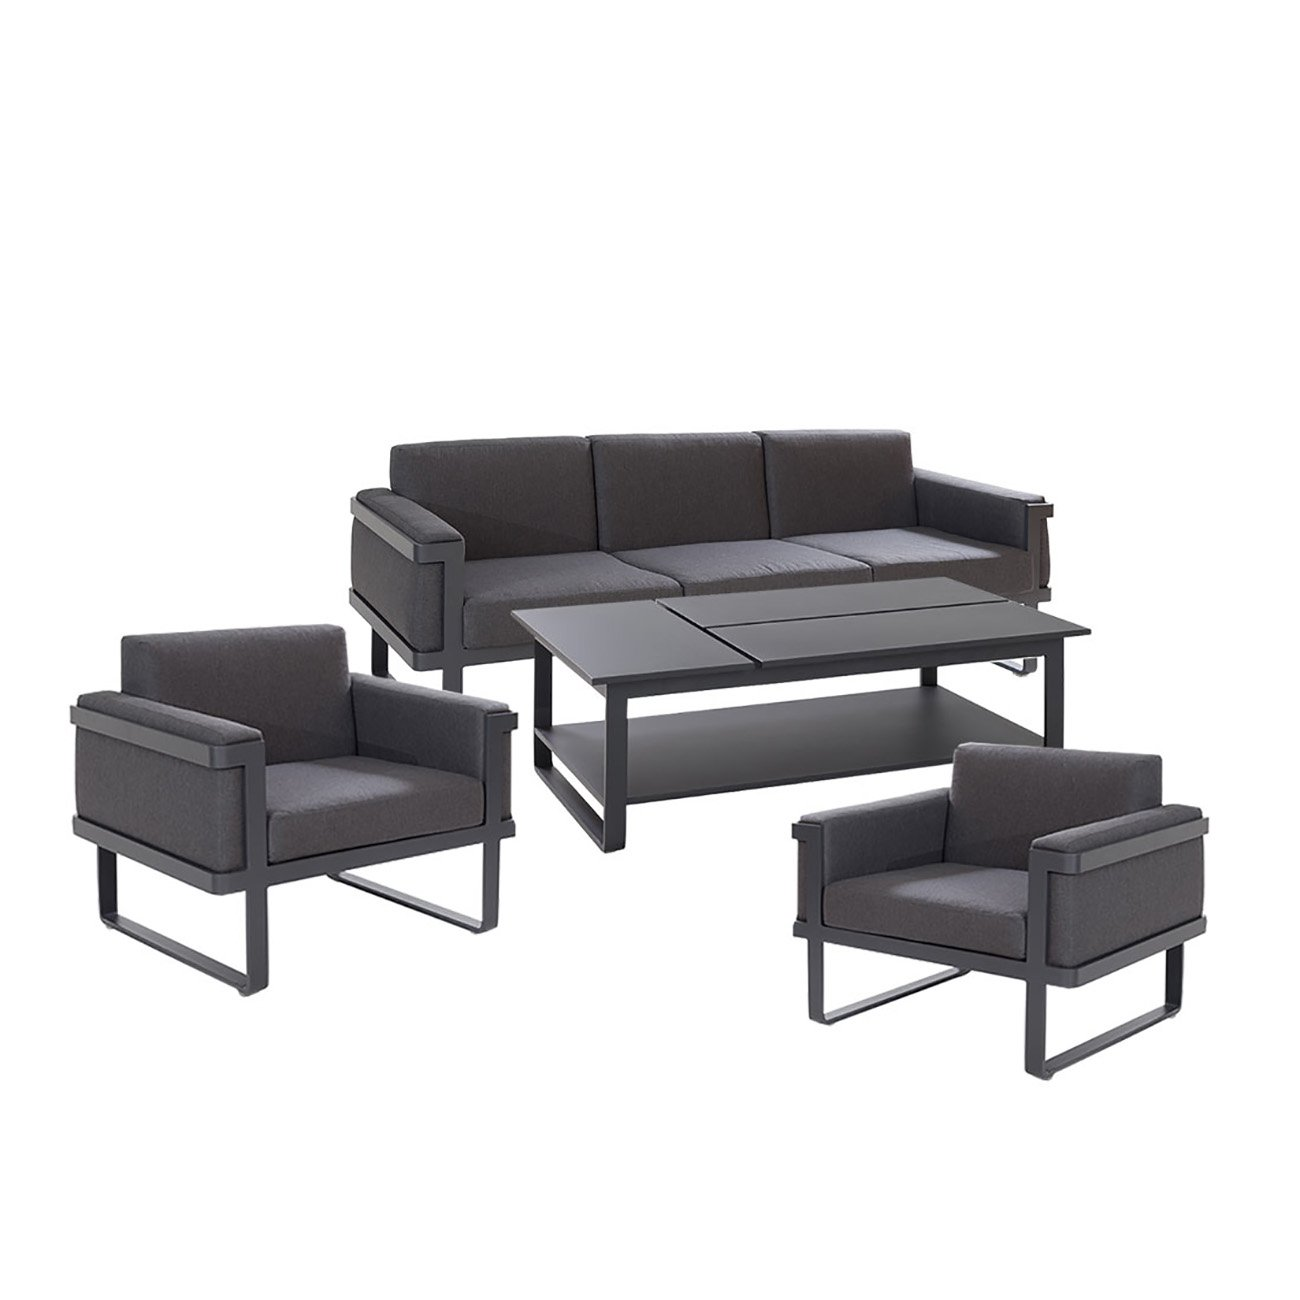 exklusive gartenm bel outliv boracay alu textilene loungem bel outdoor gartenlounge. Black Bedroom Furniture Sets. Home Design Ideas